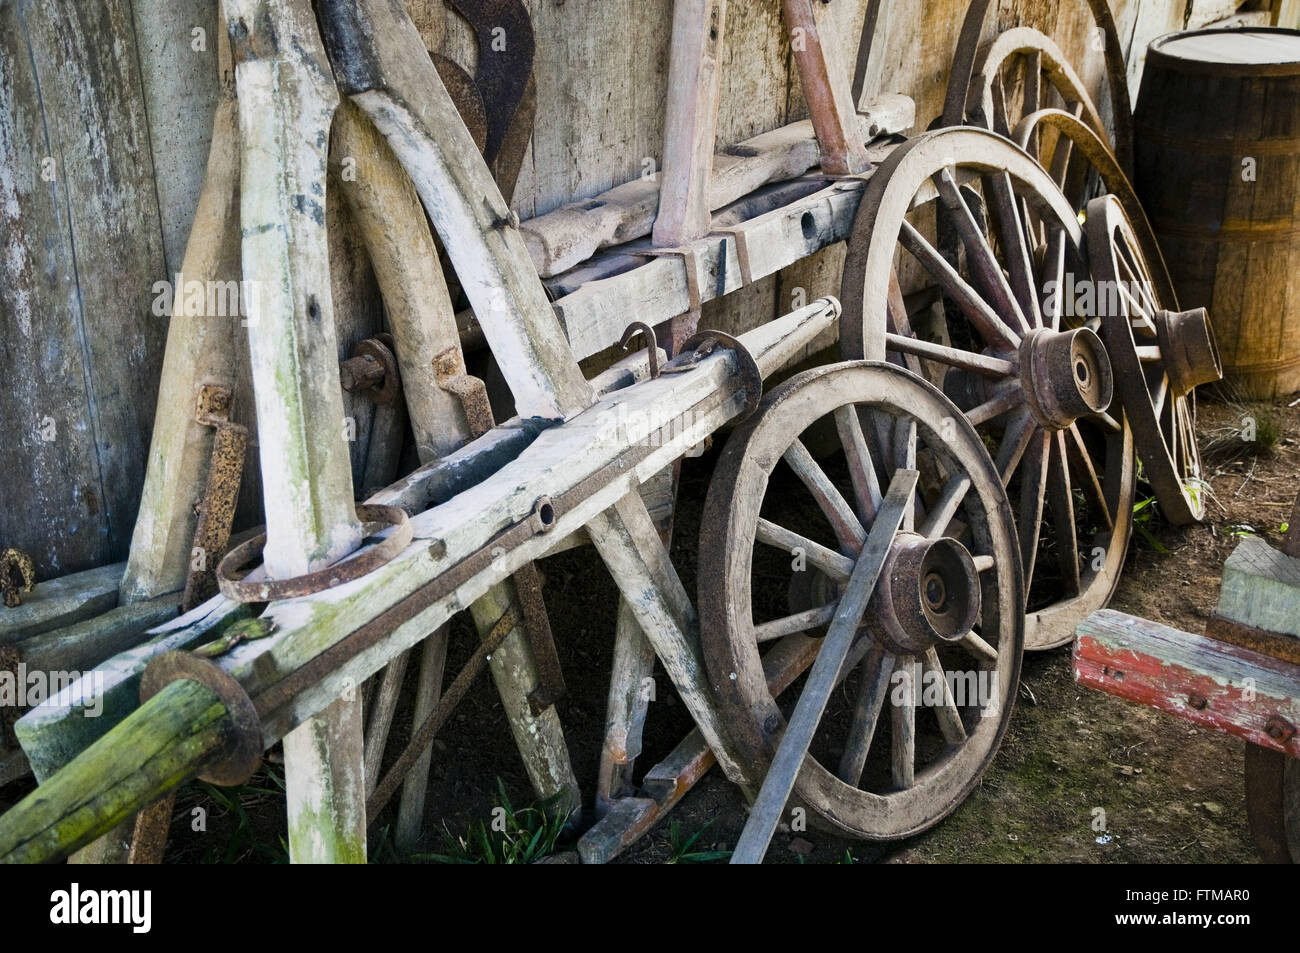 Wheels carroca dismantled in rural property - Stock Image